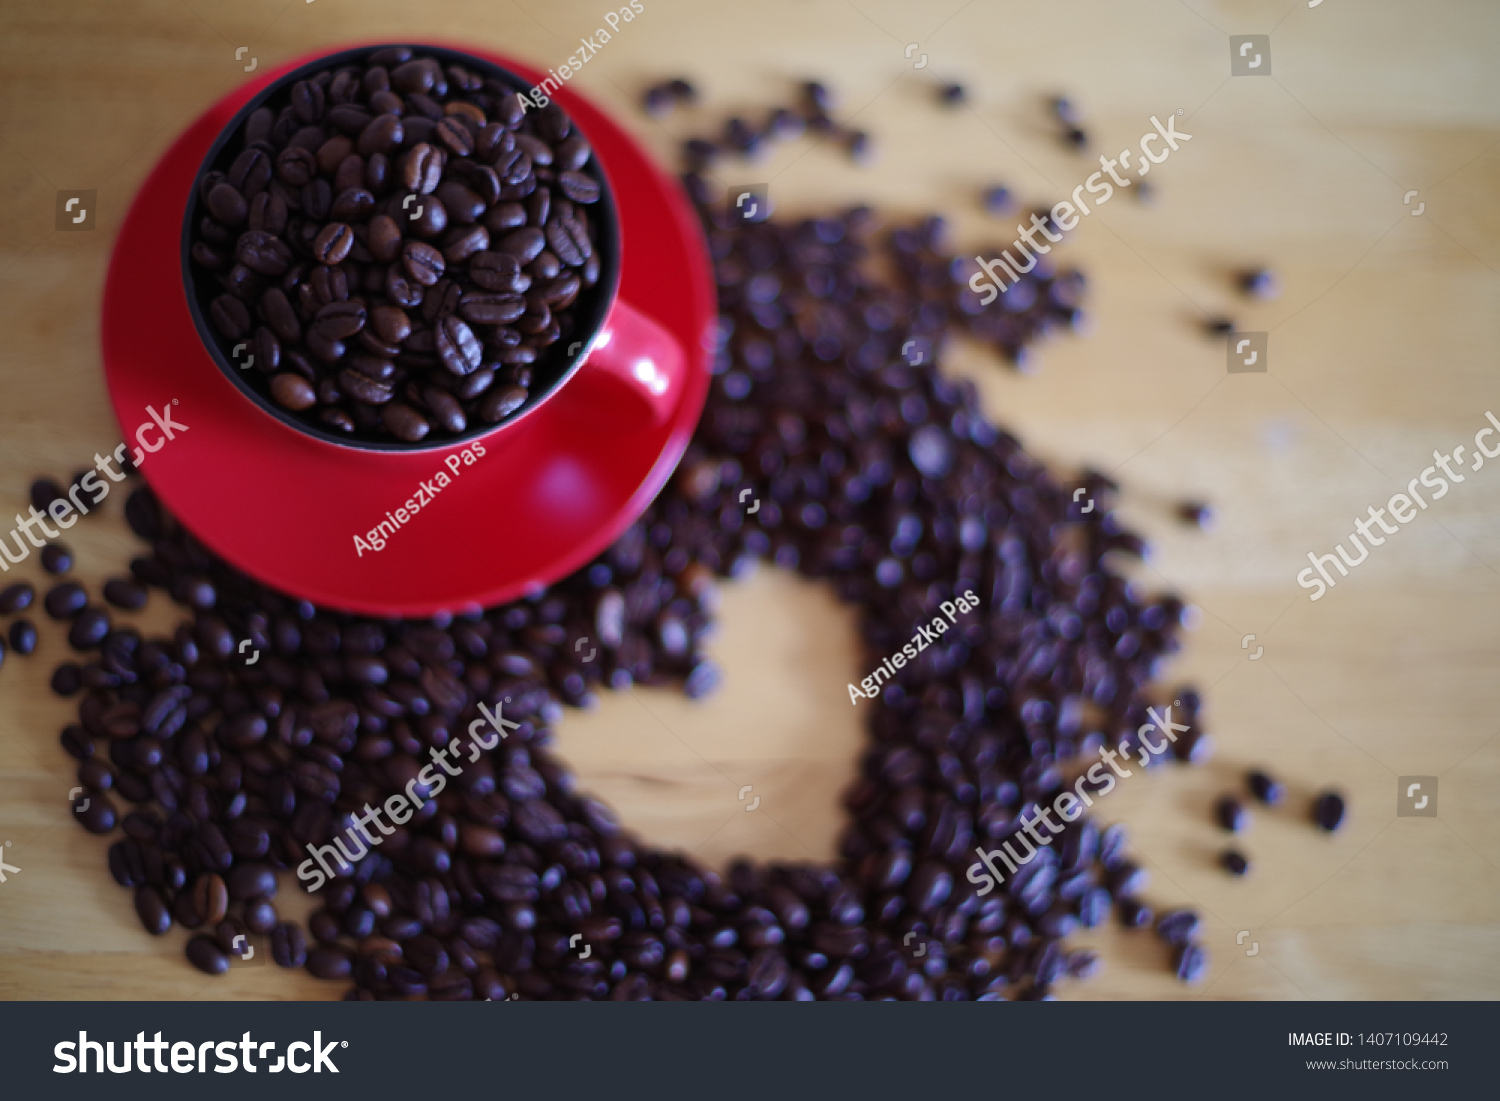 stock-photo-coffee-beans-in-red-cup-and-